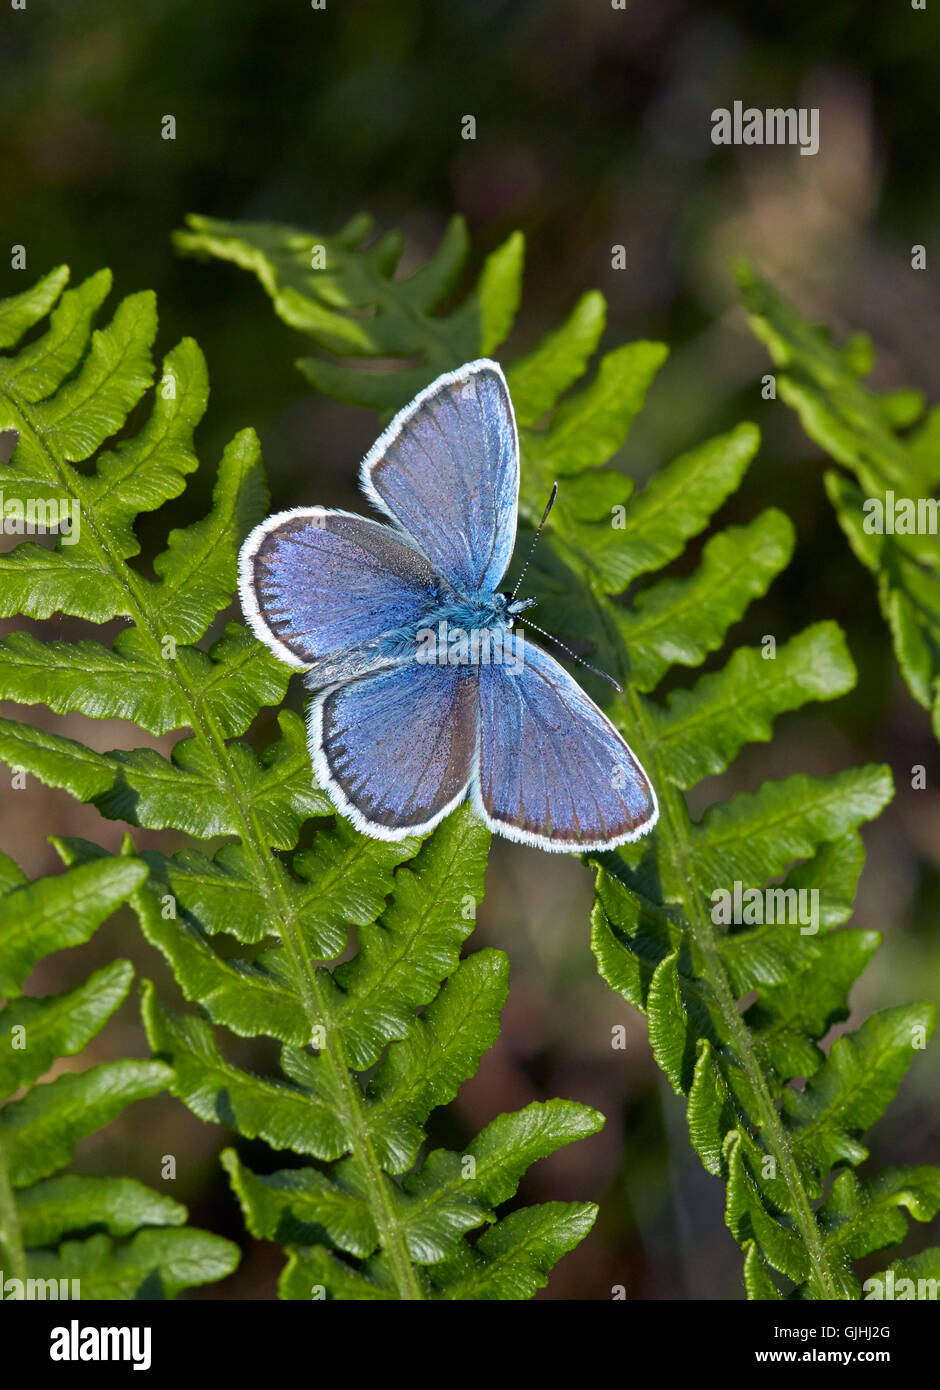 Silver-studded Blue perched on Bracken. Fairmile Common, Esher, Surrey, England. - Stock Image